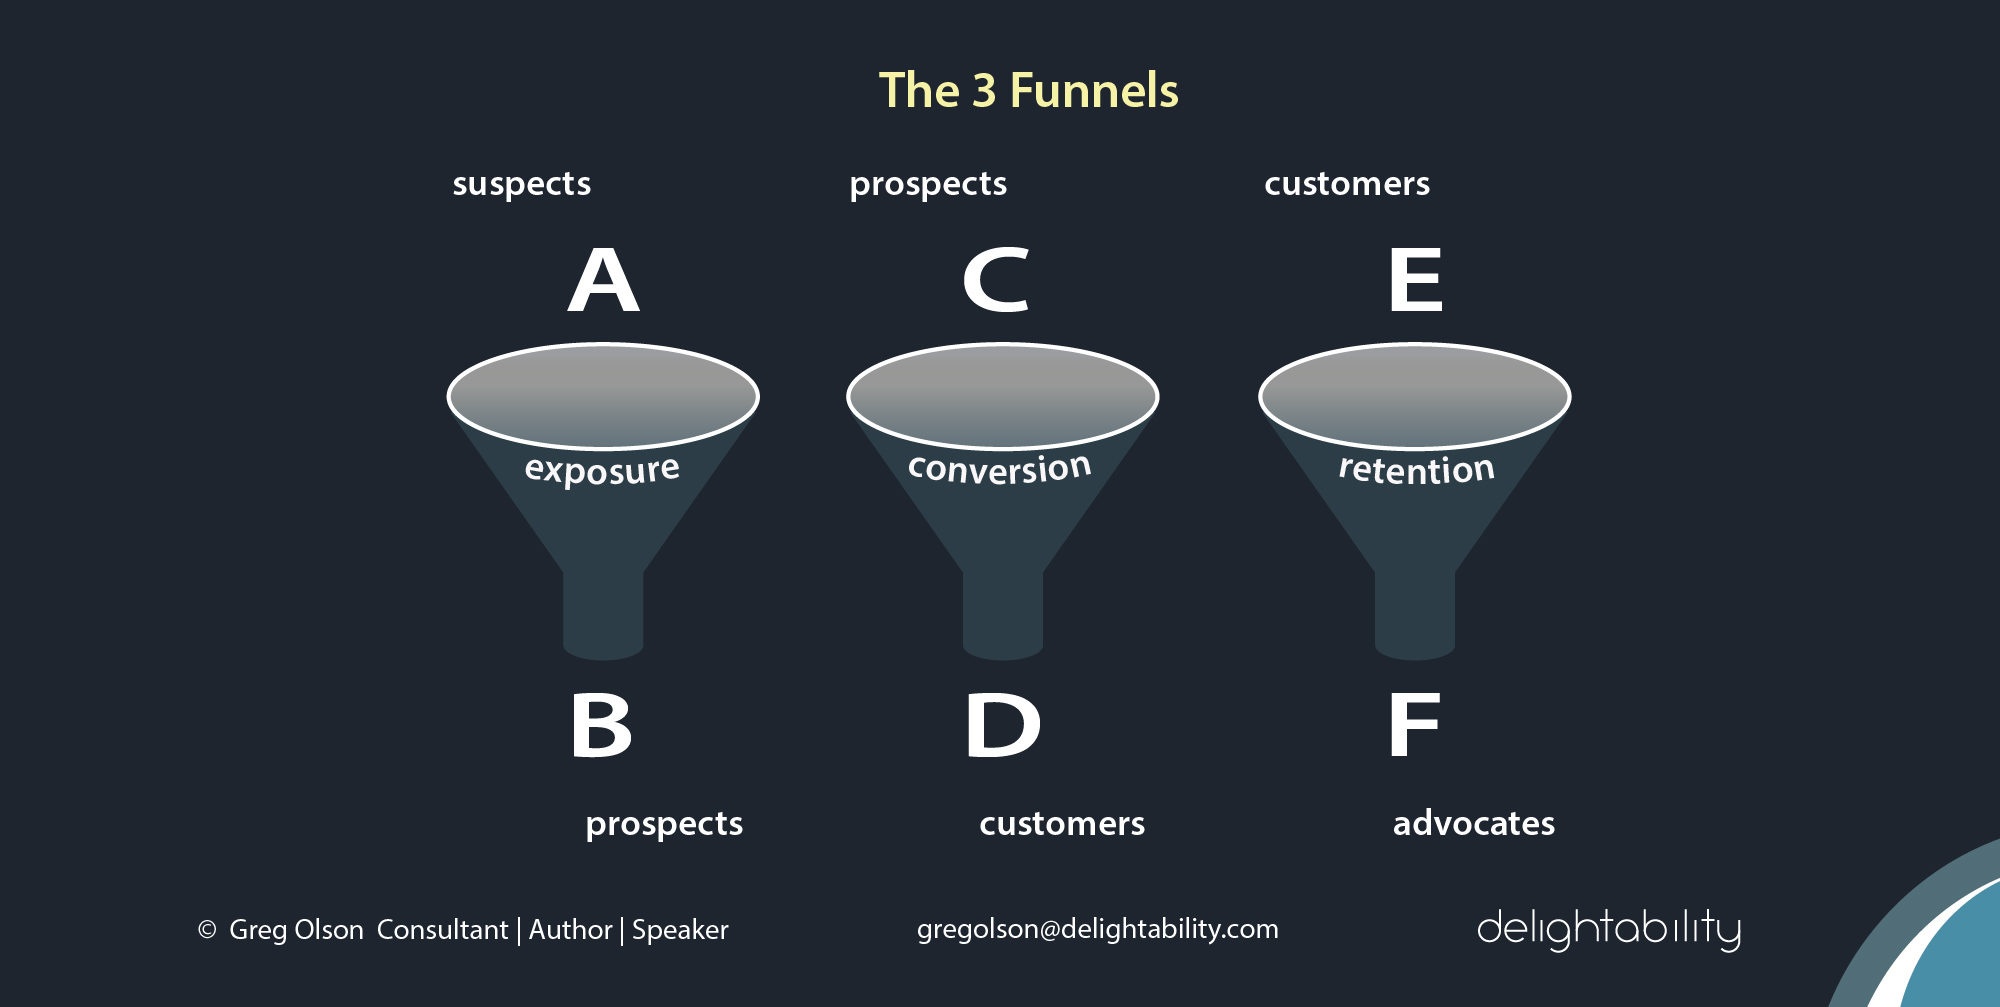 image of The-3-Funnels-Diagnostic-Delightability-by consultant and author Gregory-Olson